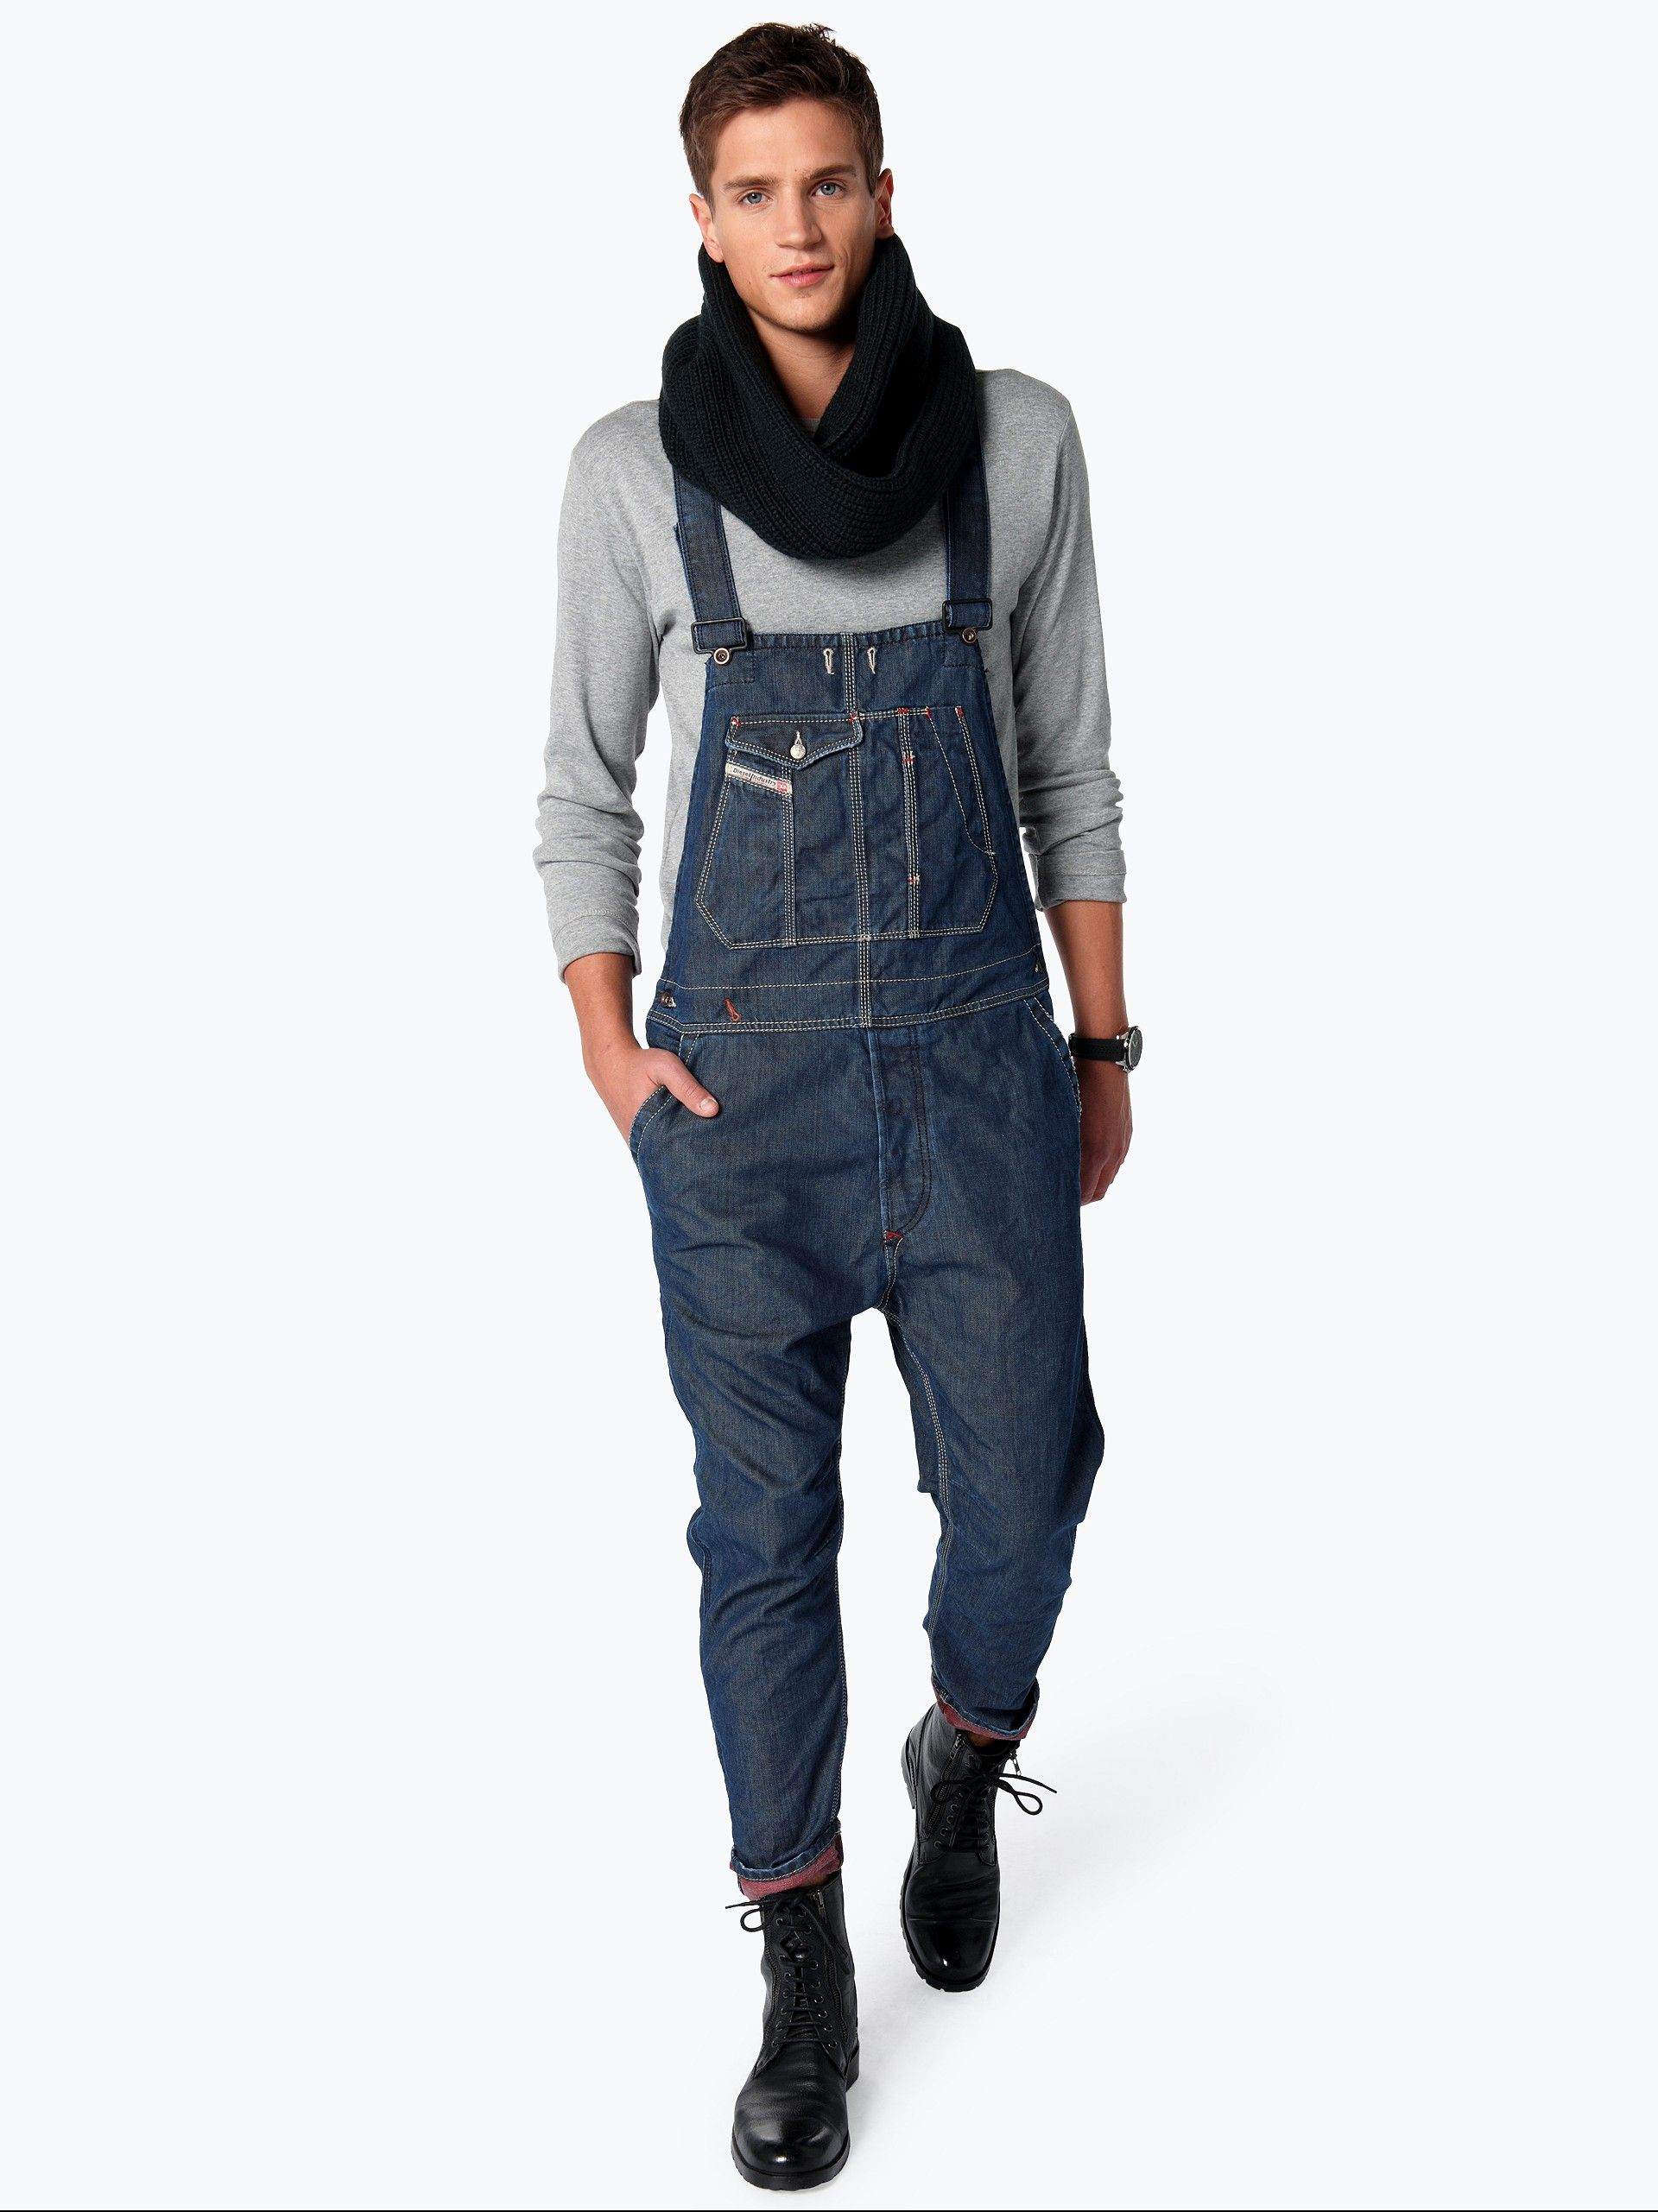 1f5c861e3 Gys  Overalls - More models in Overalls